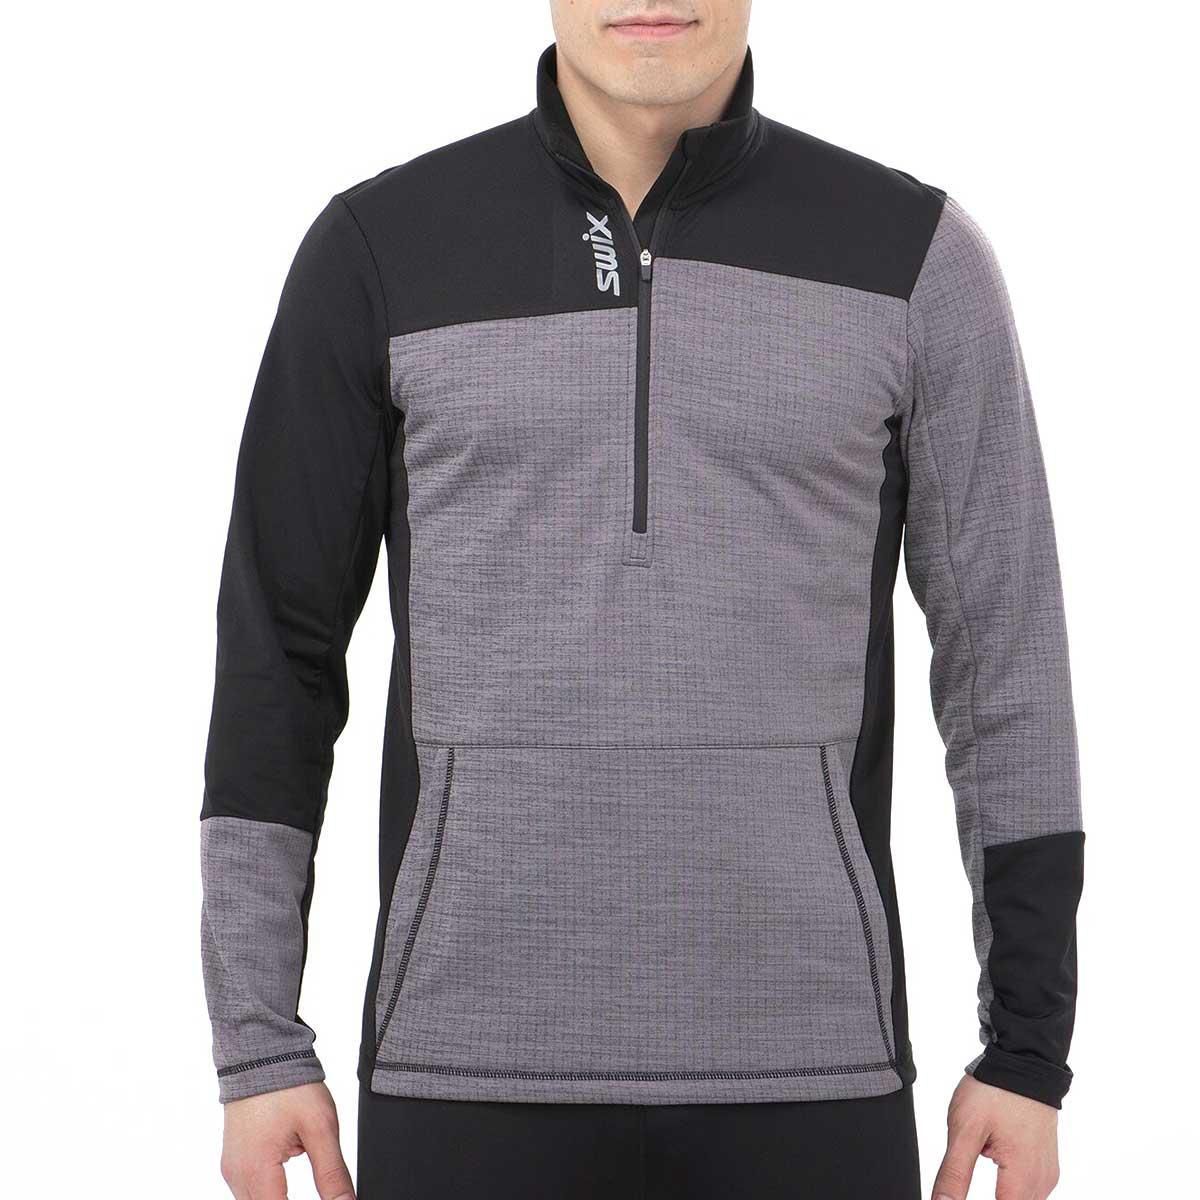 Swix Men's Nybo 1/2 Zip Sweater in Heather Charcoal